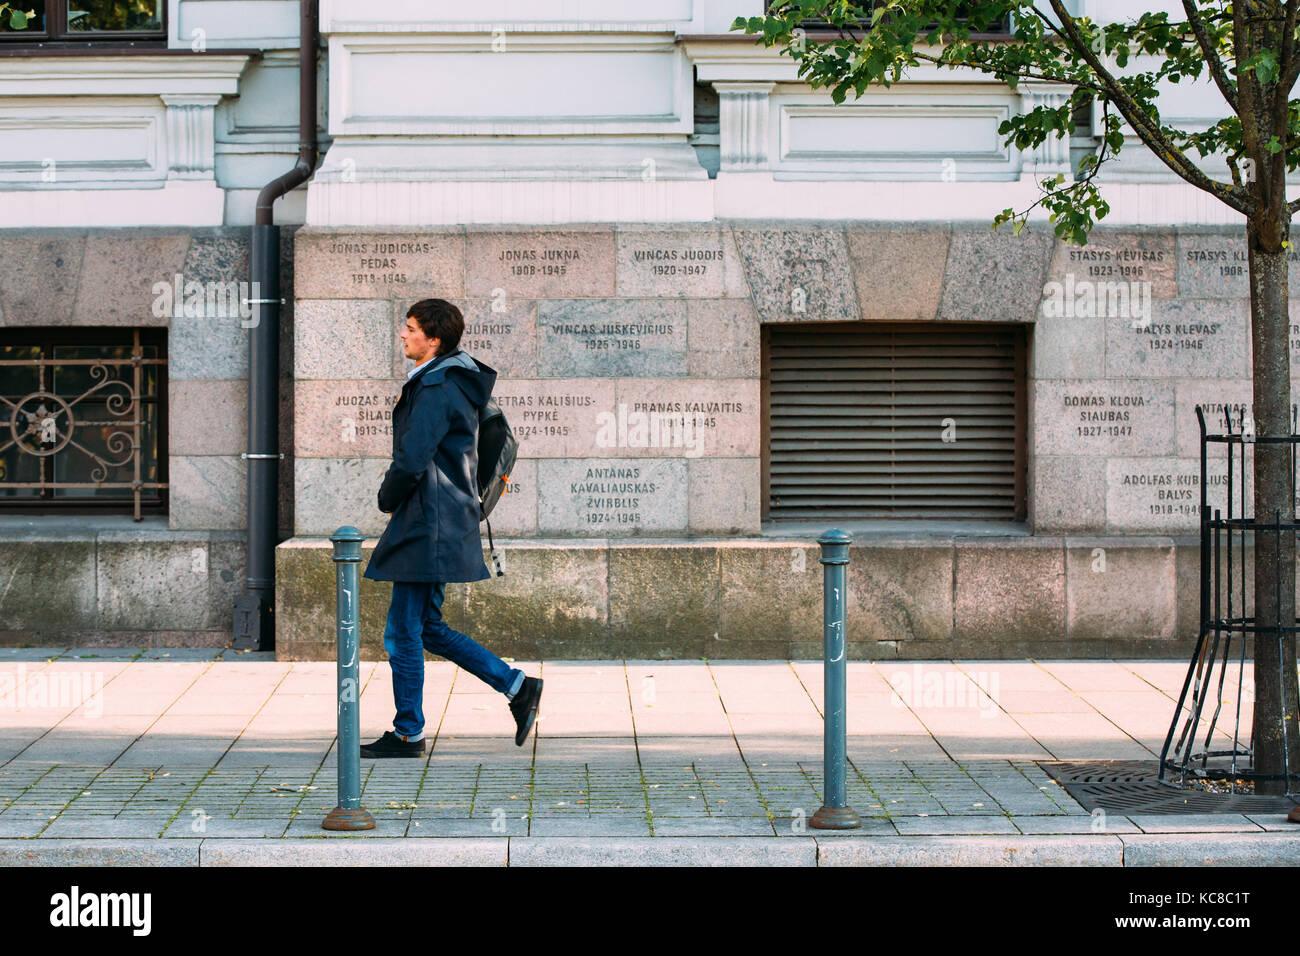 Vilnius, Lithuania - July 7, 2016: Young Man Walking Past Wall Of Museum Of Genocide Victims Located In Former KGB - Stock Image